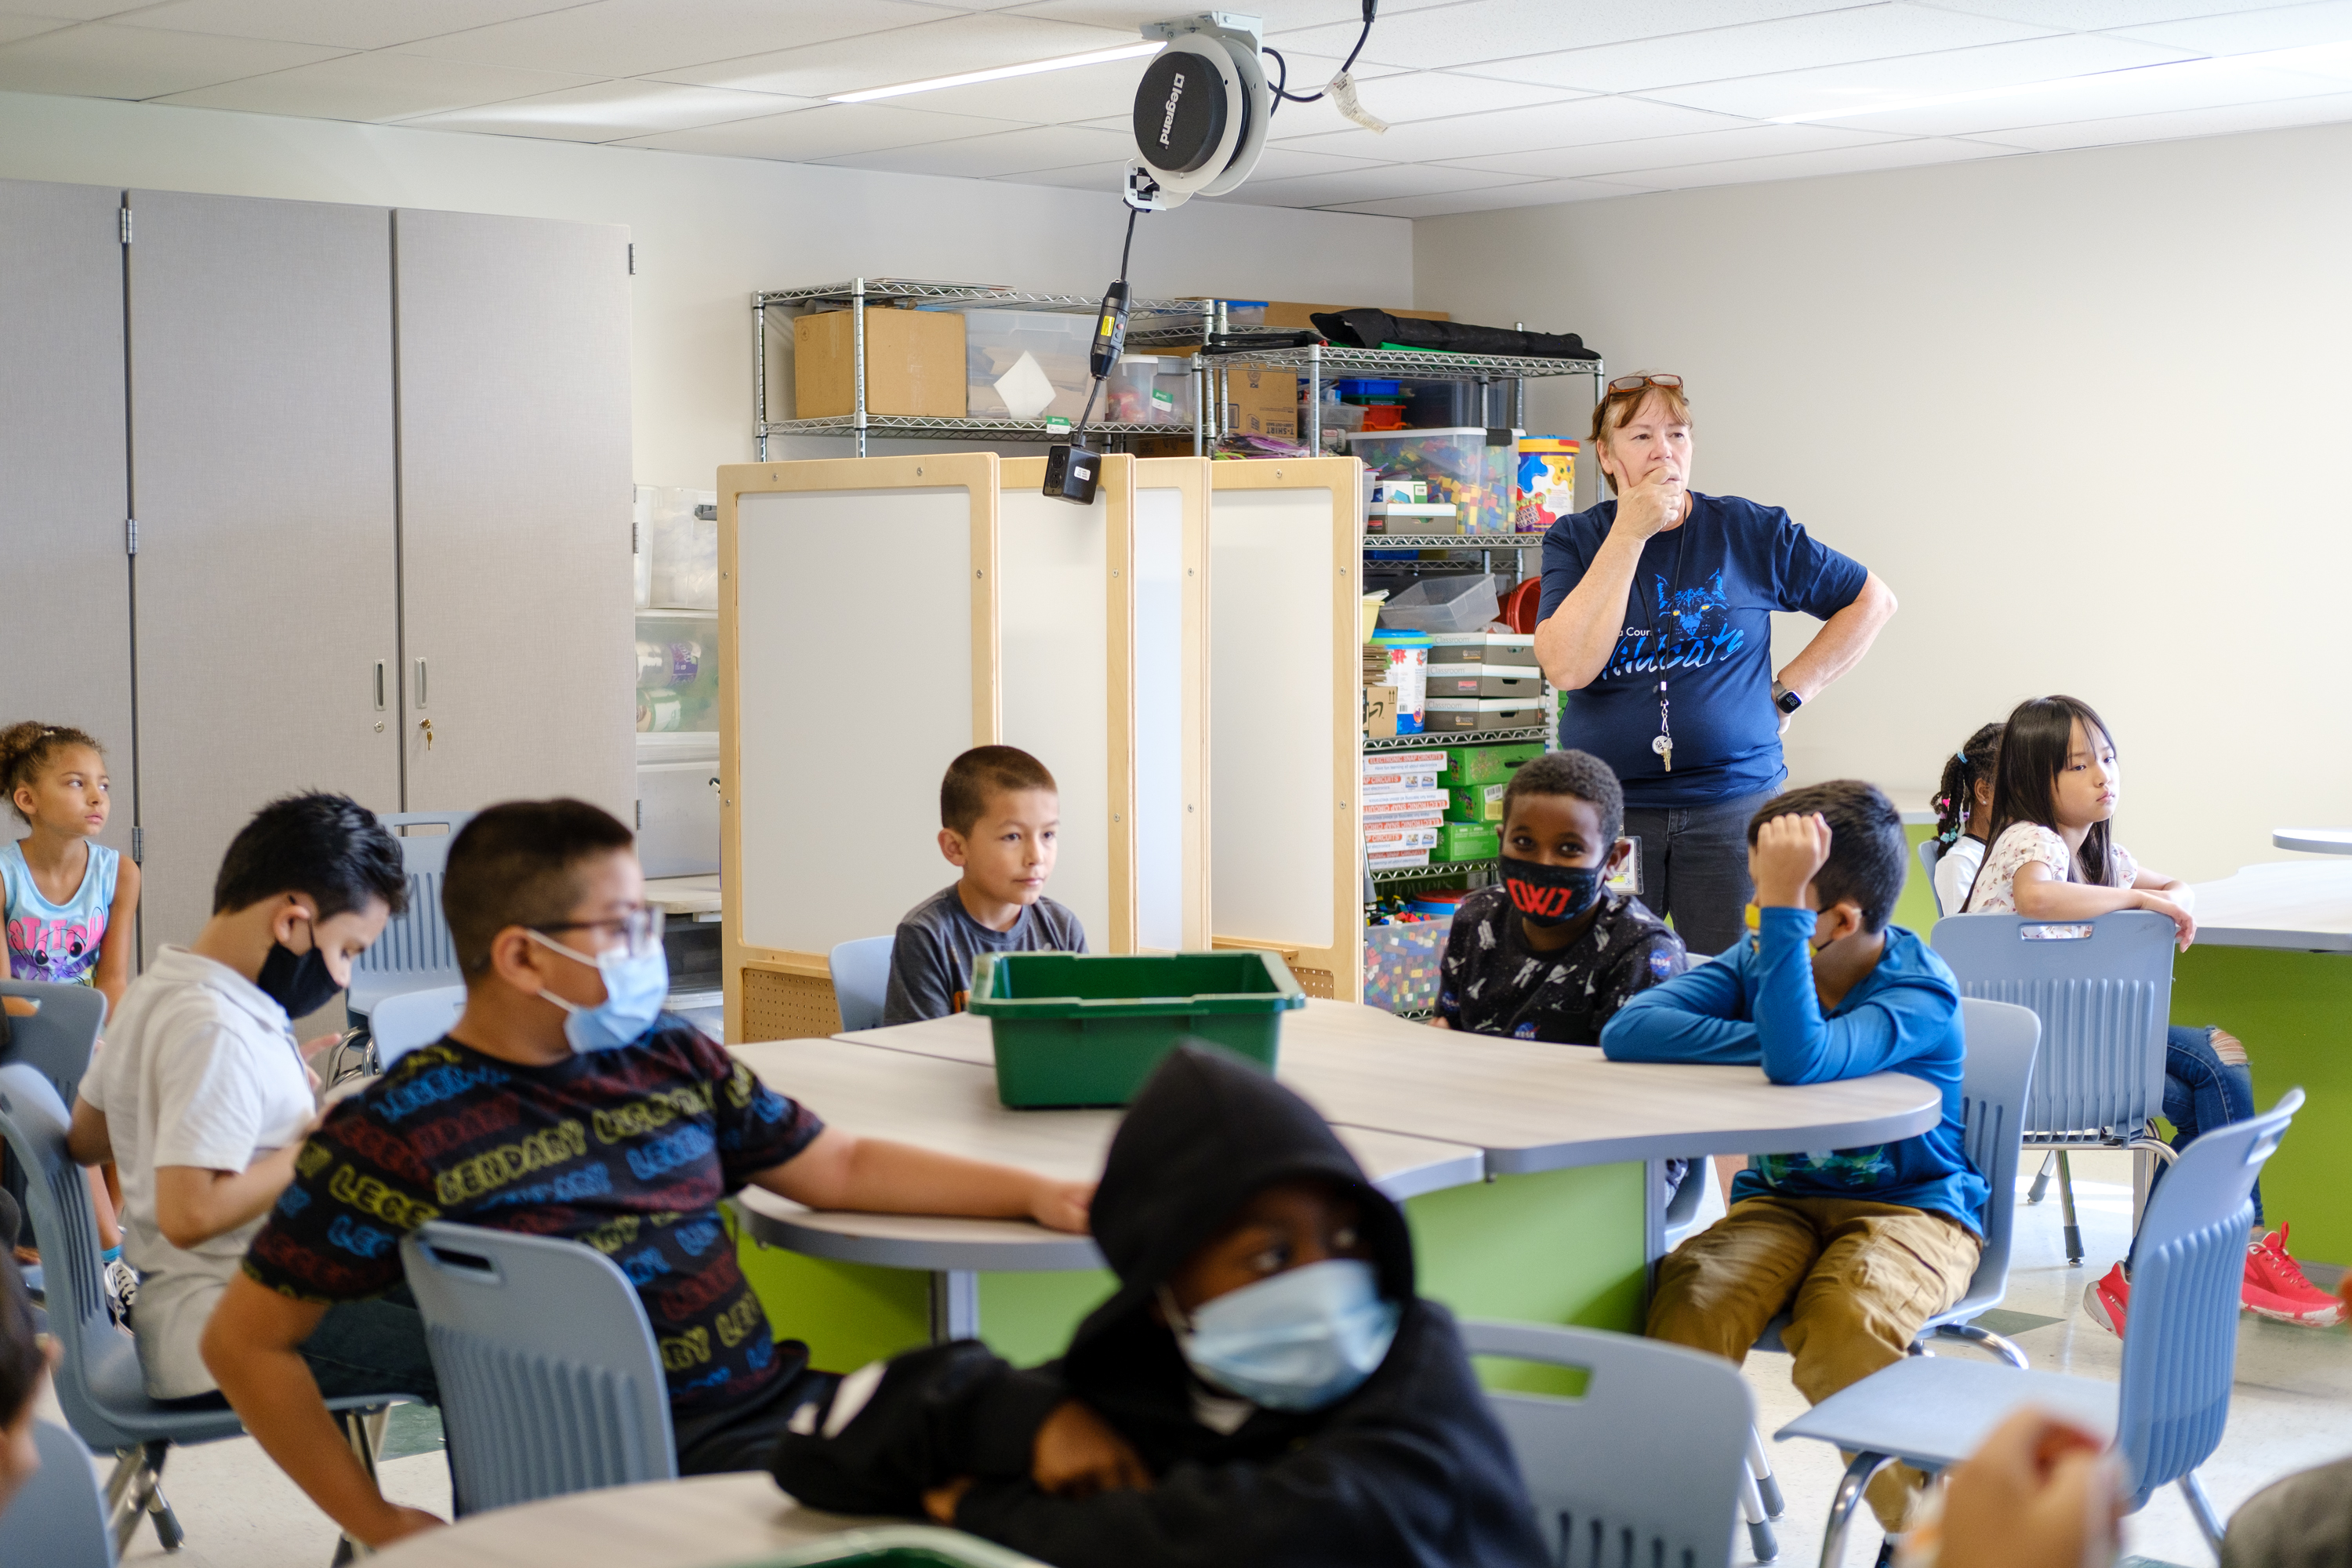 A teacher leads her students in a classroom discussion during a STEM class.